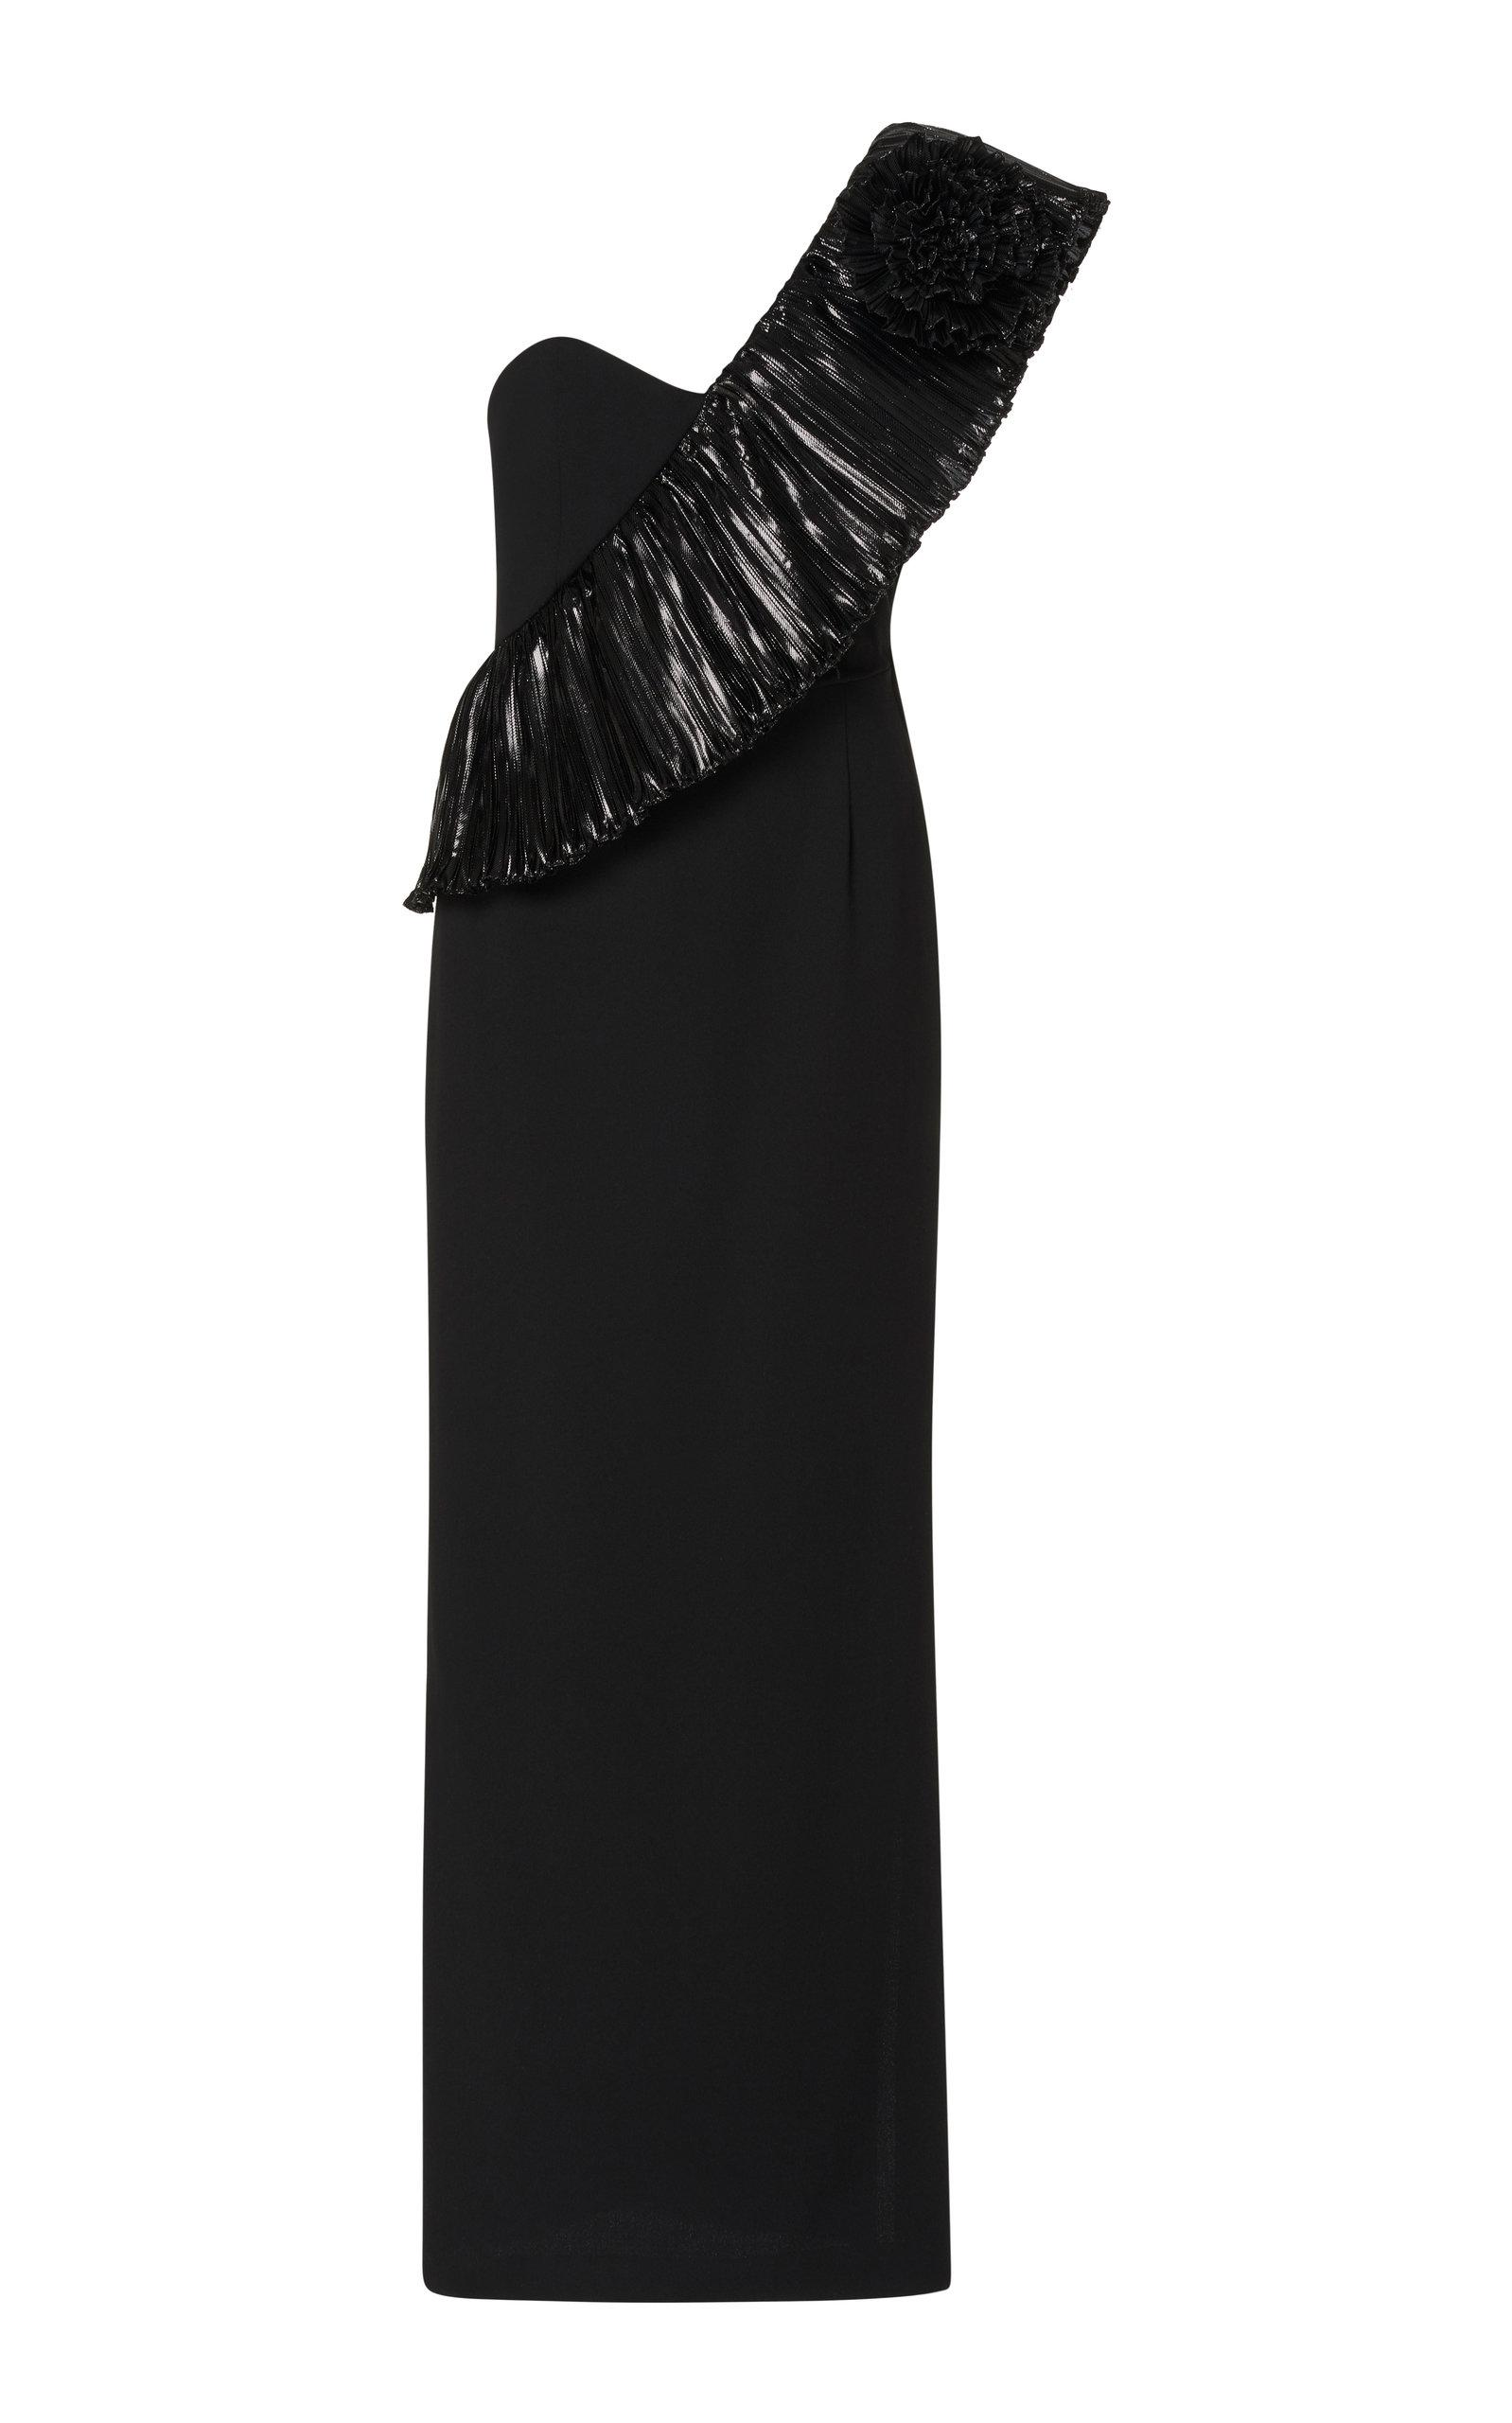 Alessandra Rich Crepe Wool One Shouldered Dress In Black